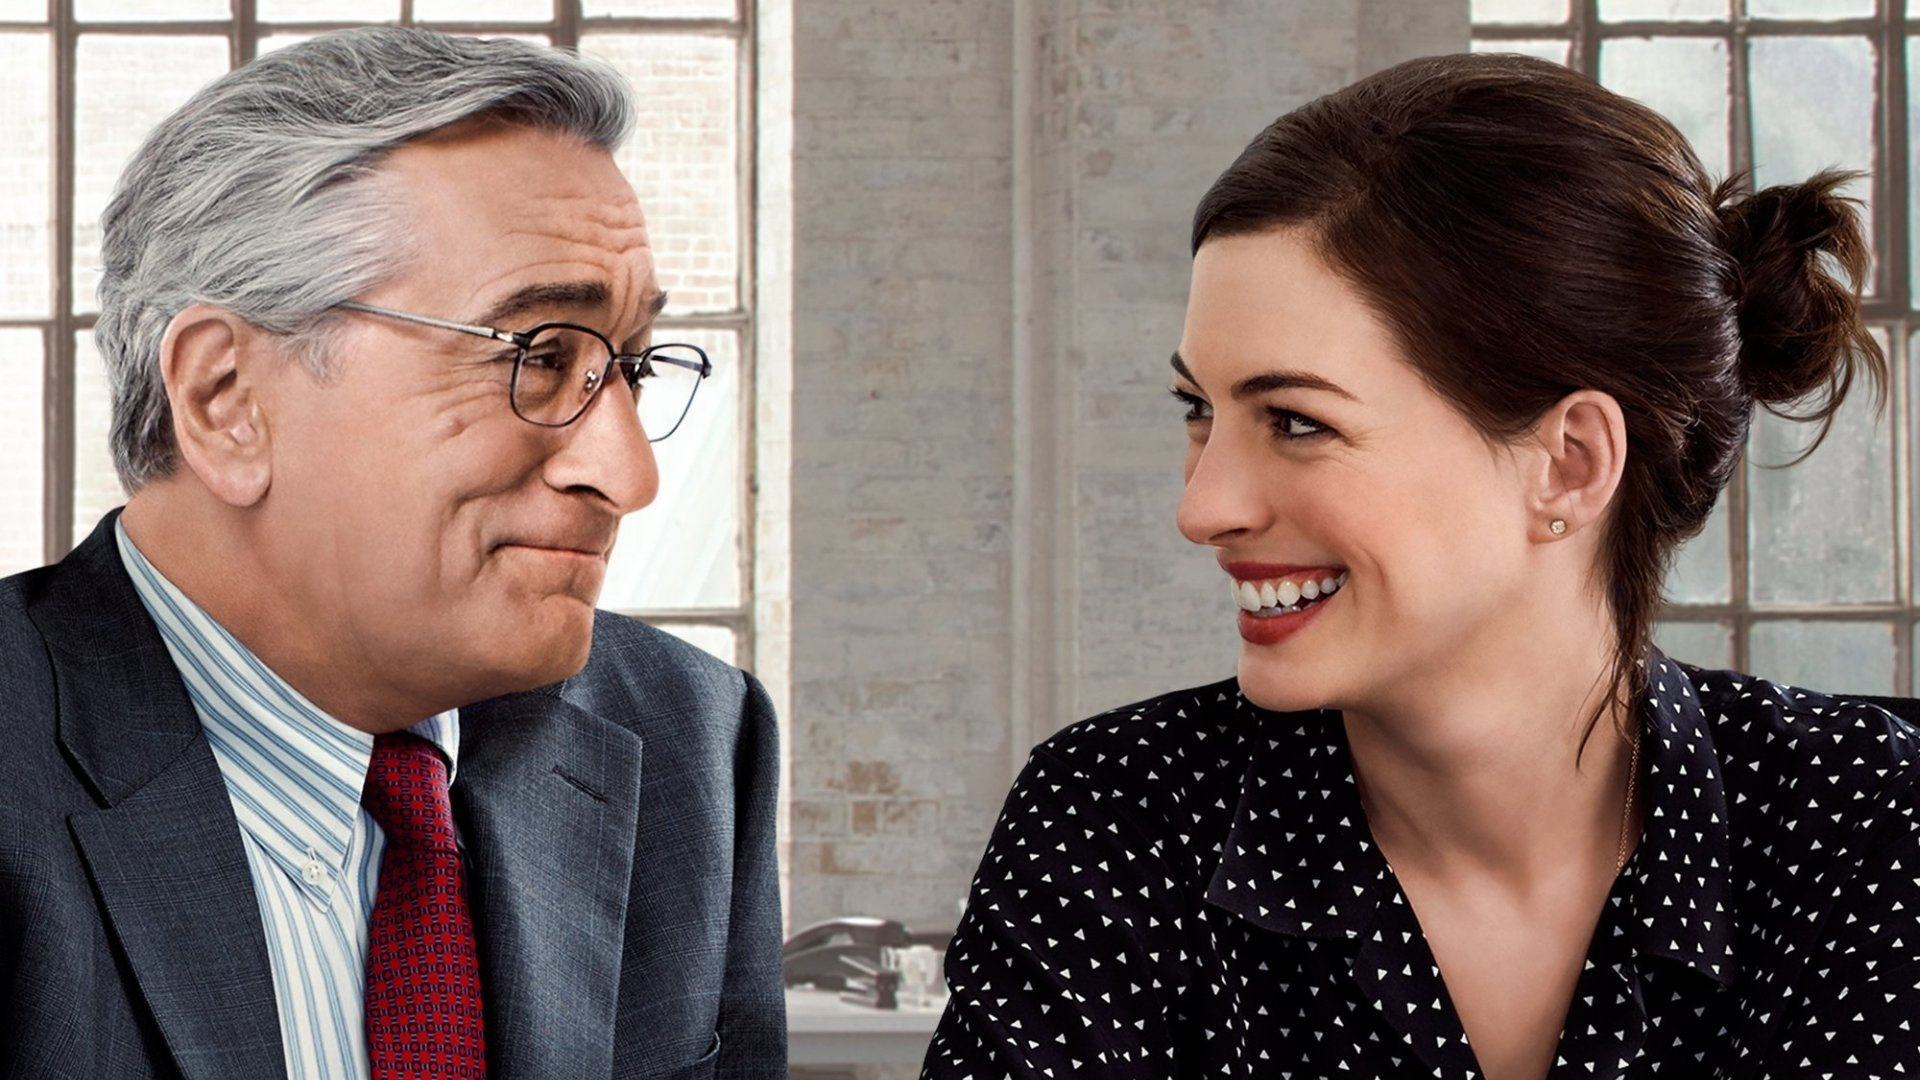 movie the intern anne hathaway robert de niro wallpaper